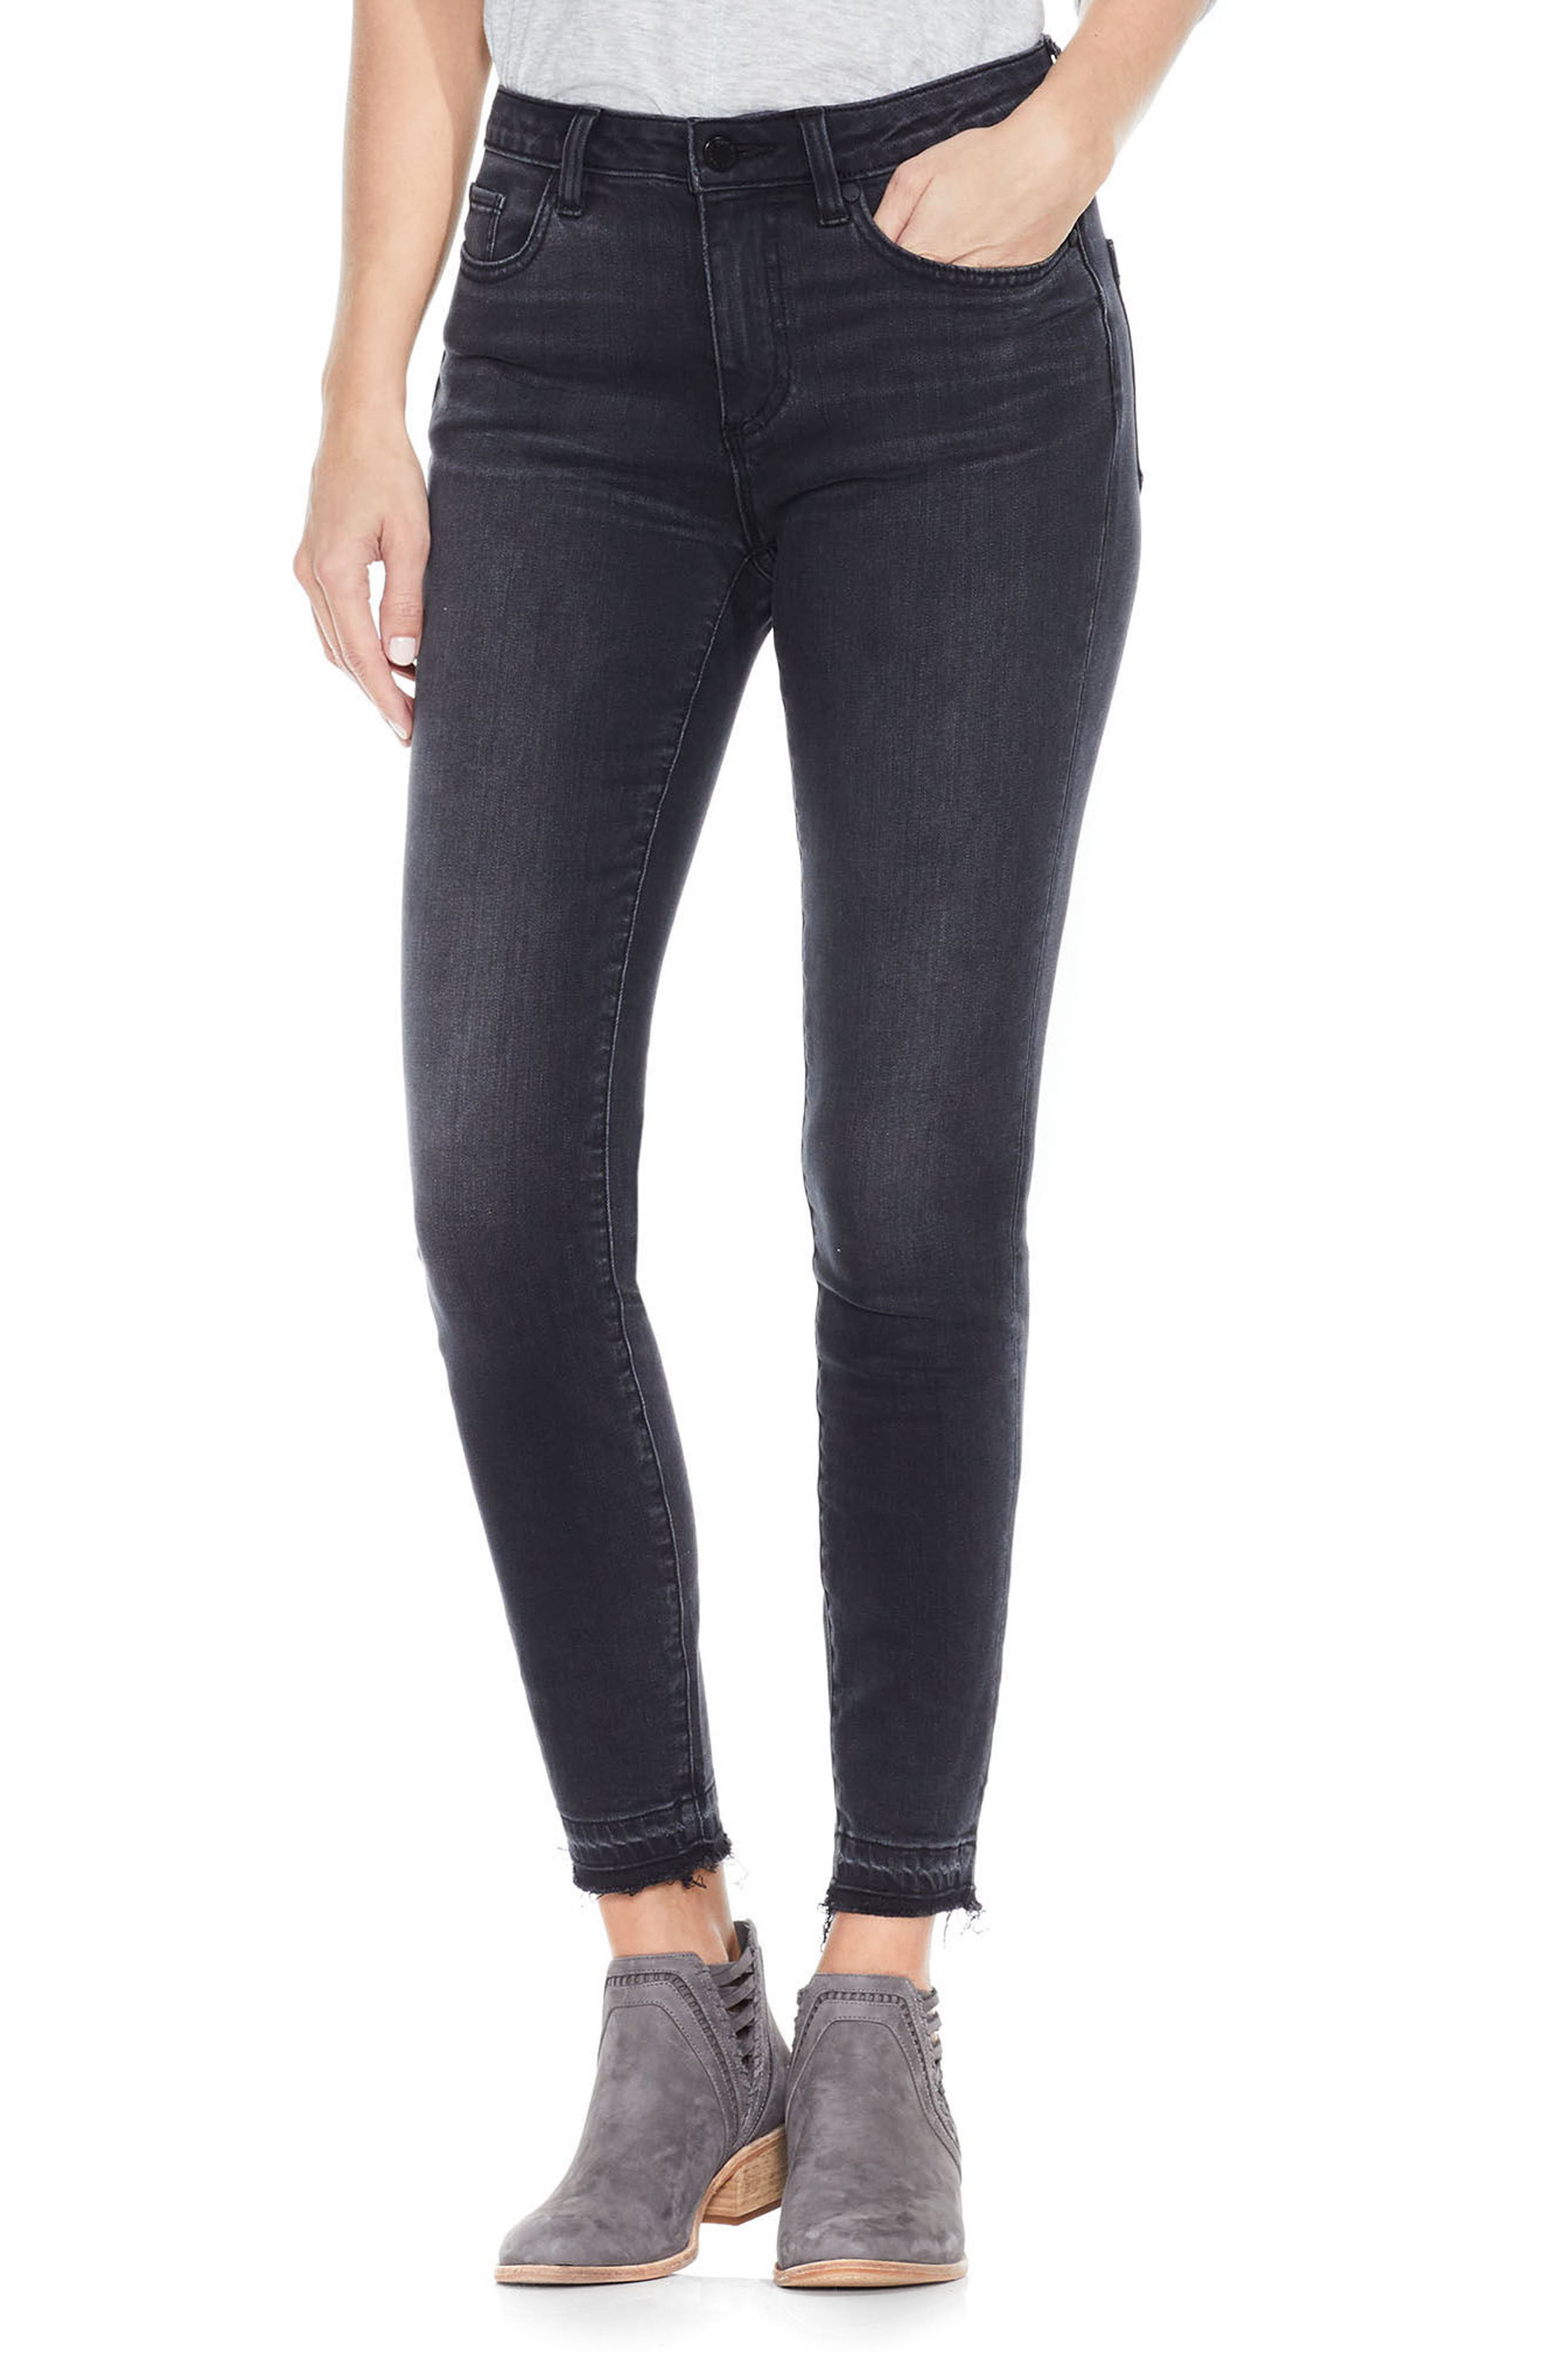 Alternate Image 1 Selected - Two by Vince Camuto Release Hem Ankle Jeans (Coal)